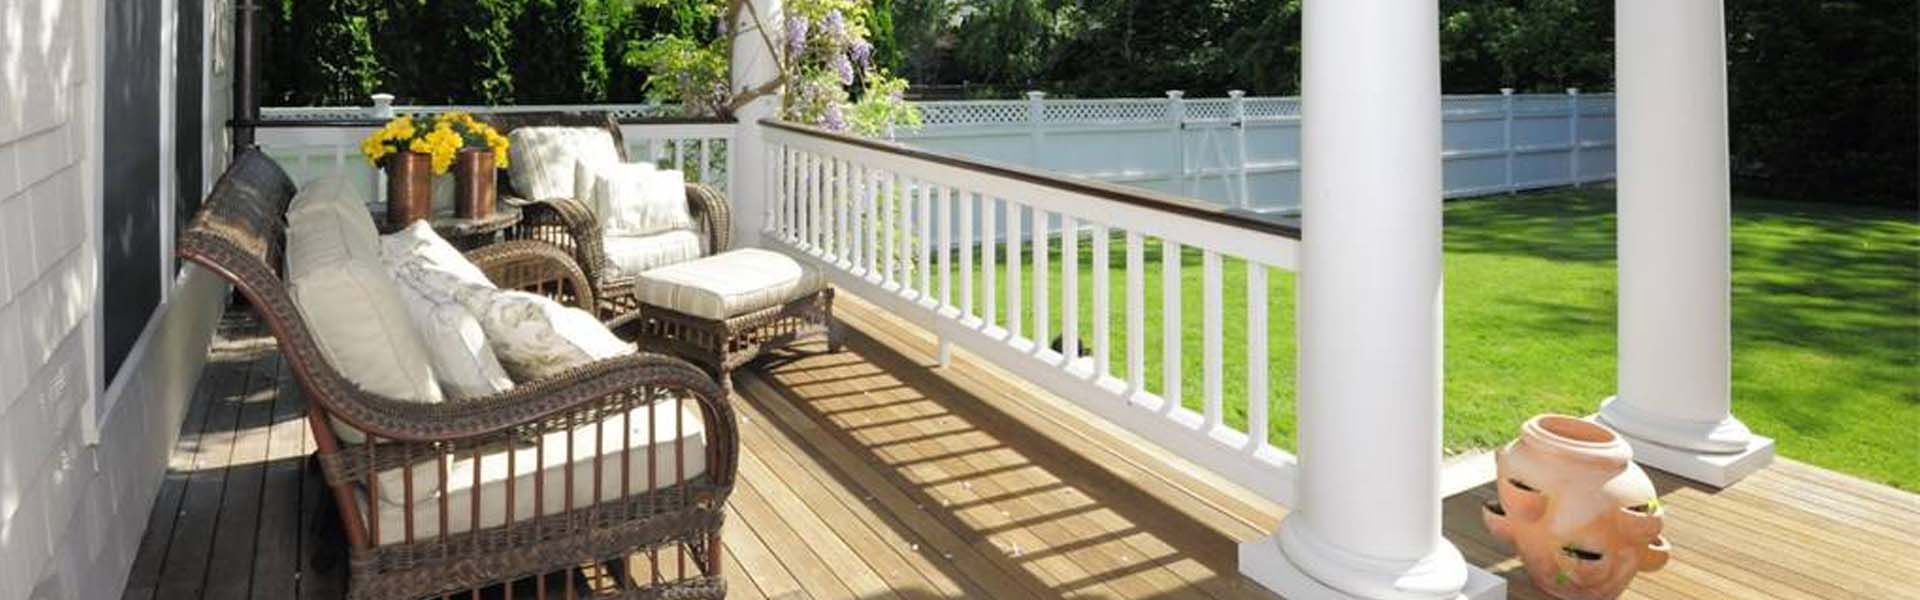 deck builder monmouth beach nj deck covered porch NJ